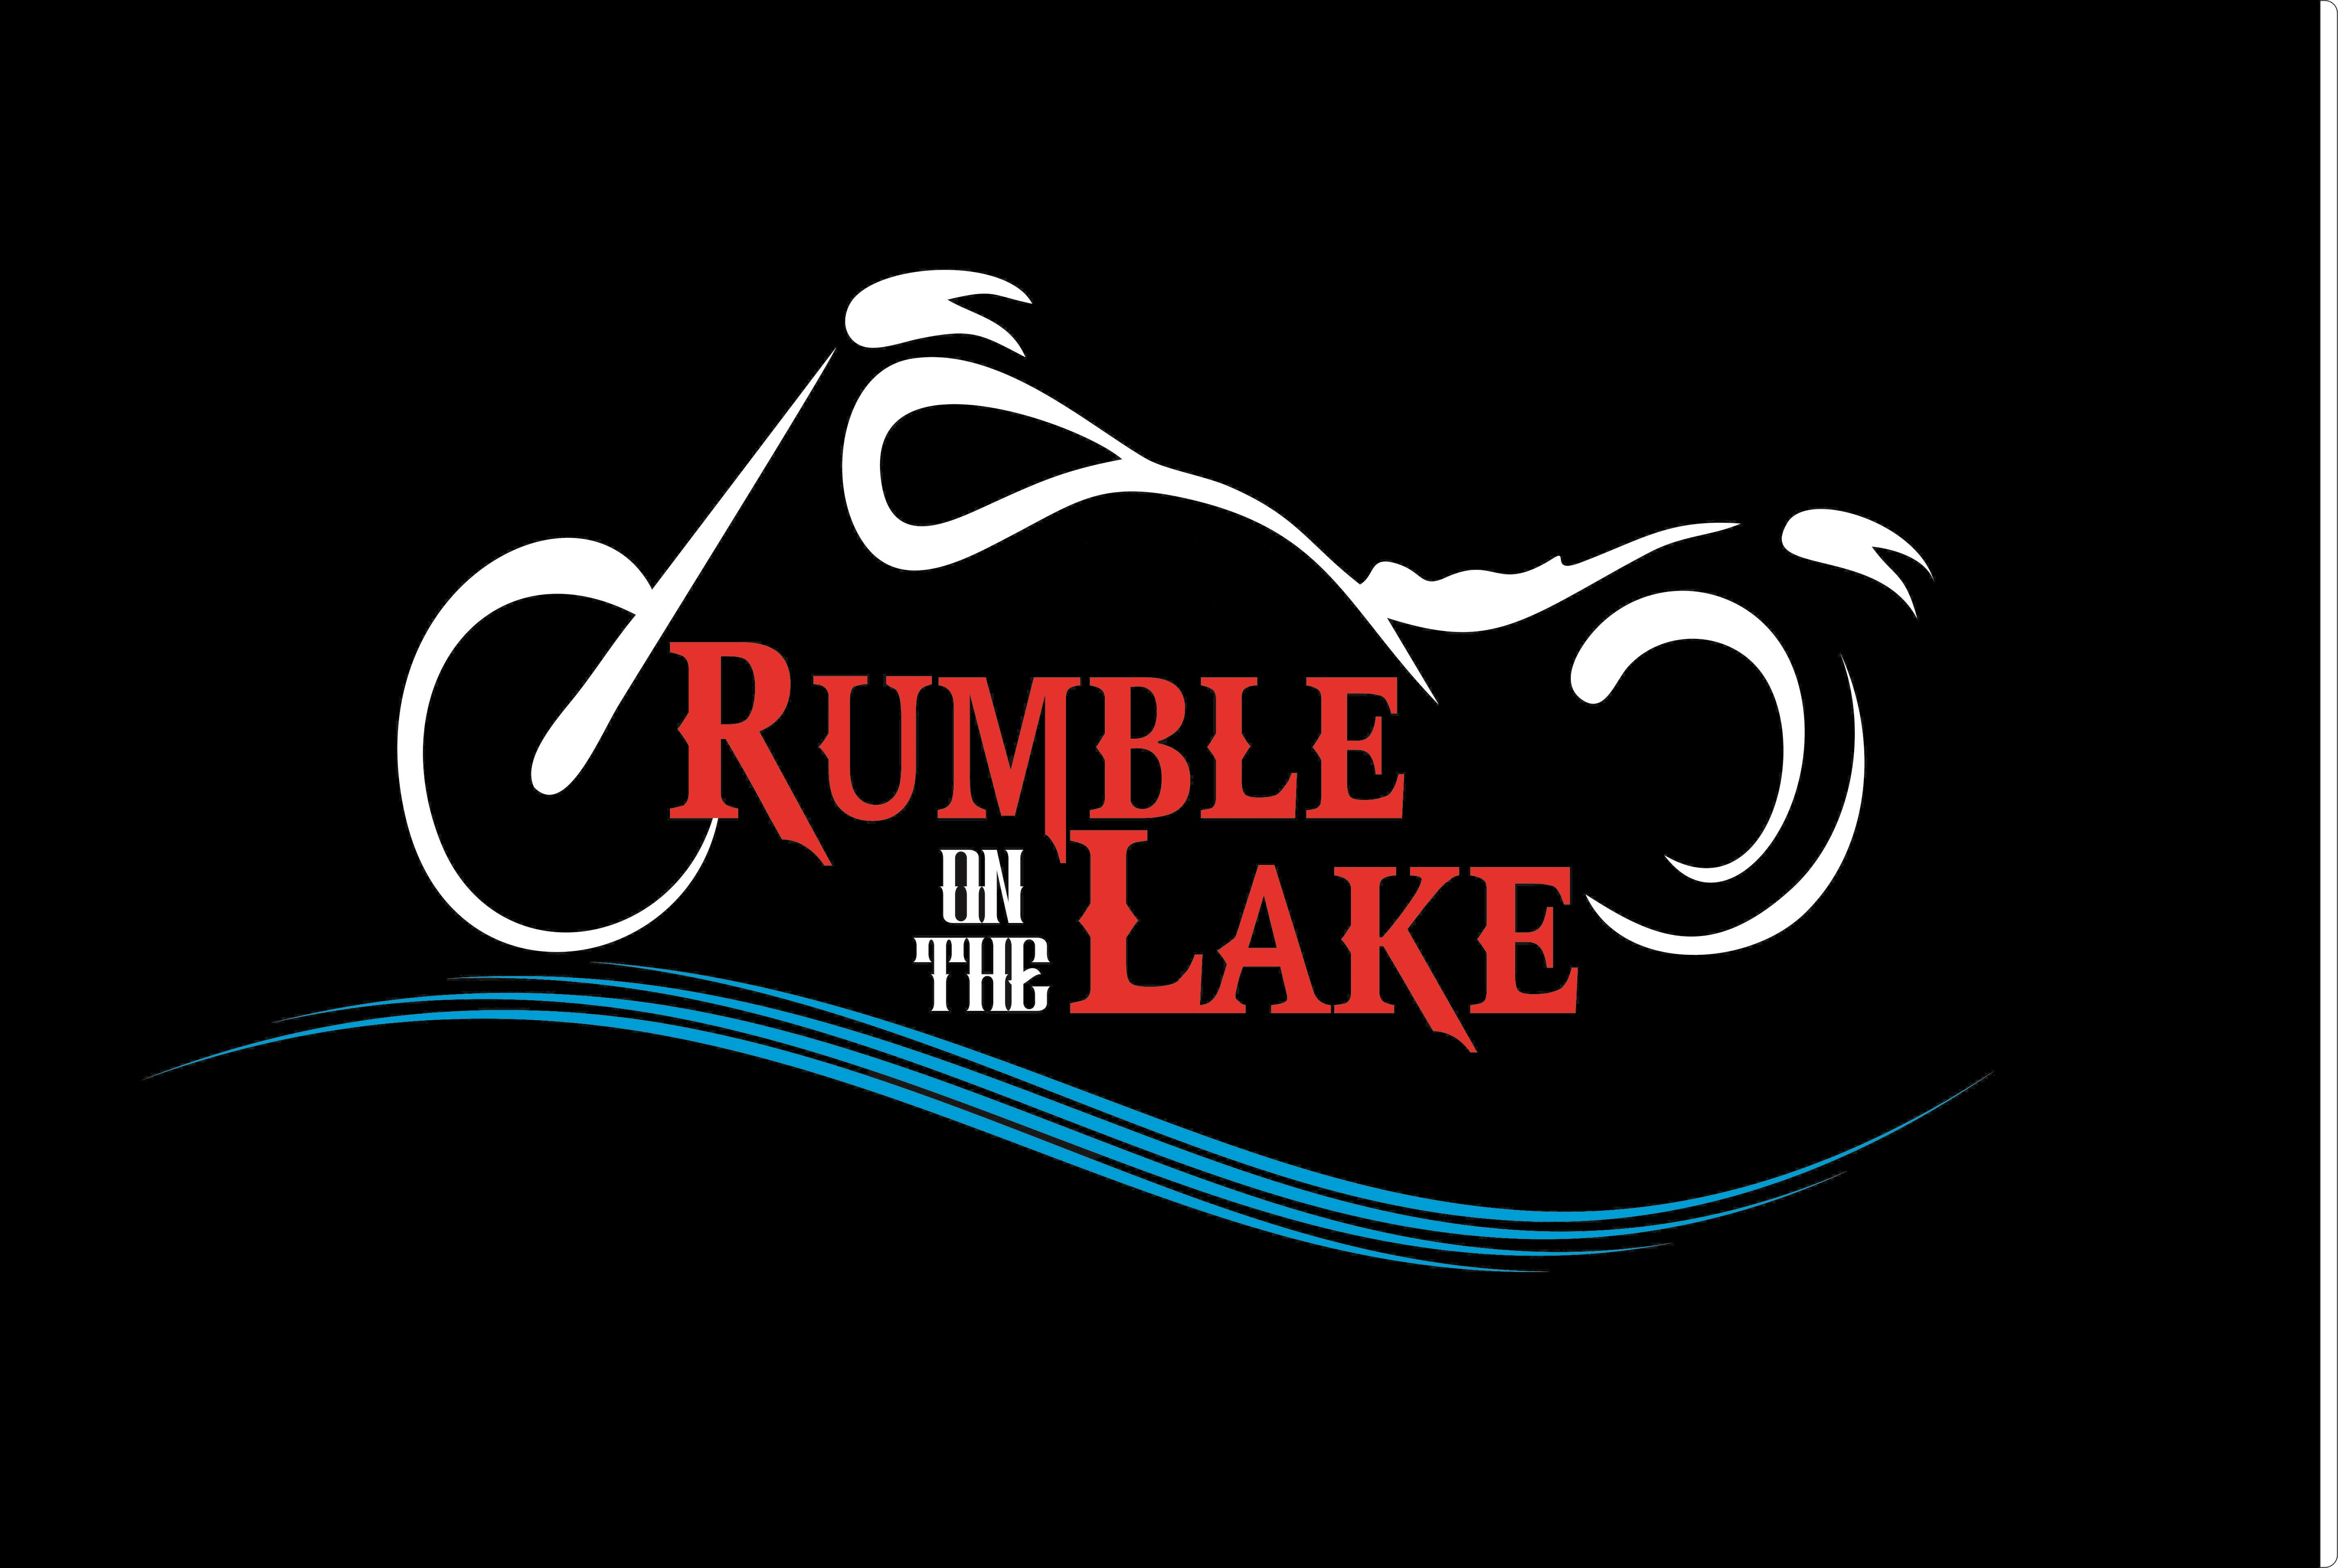 Rumble-on-the-Lake